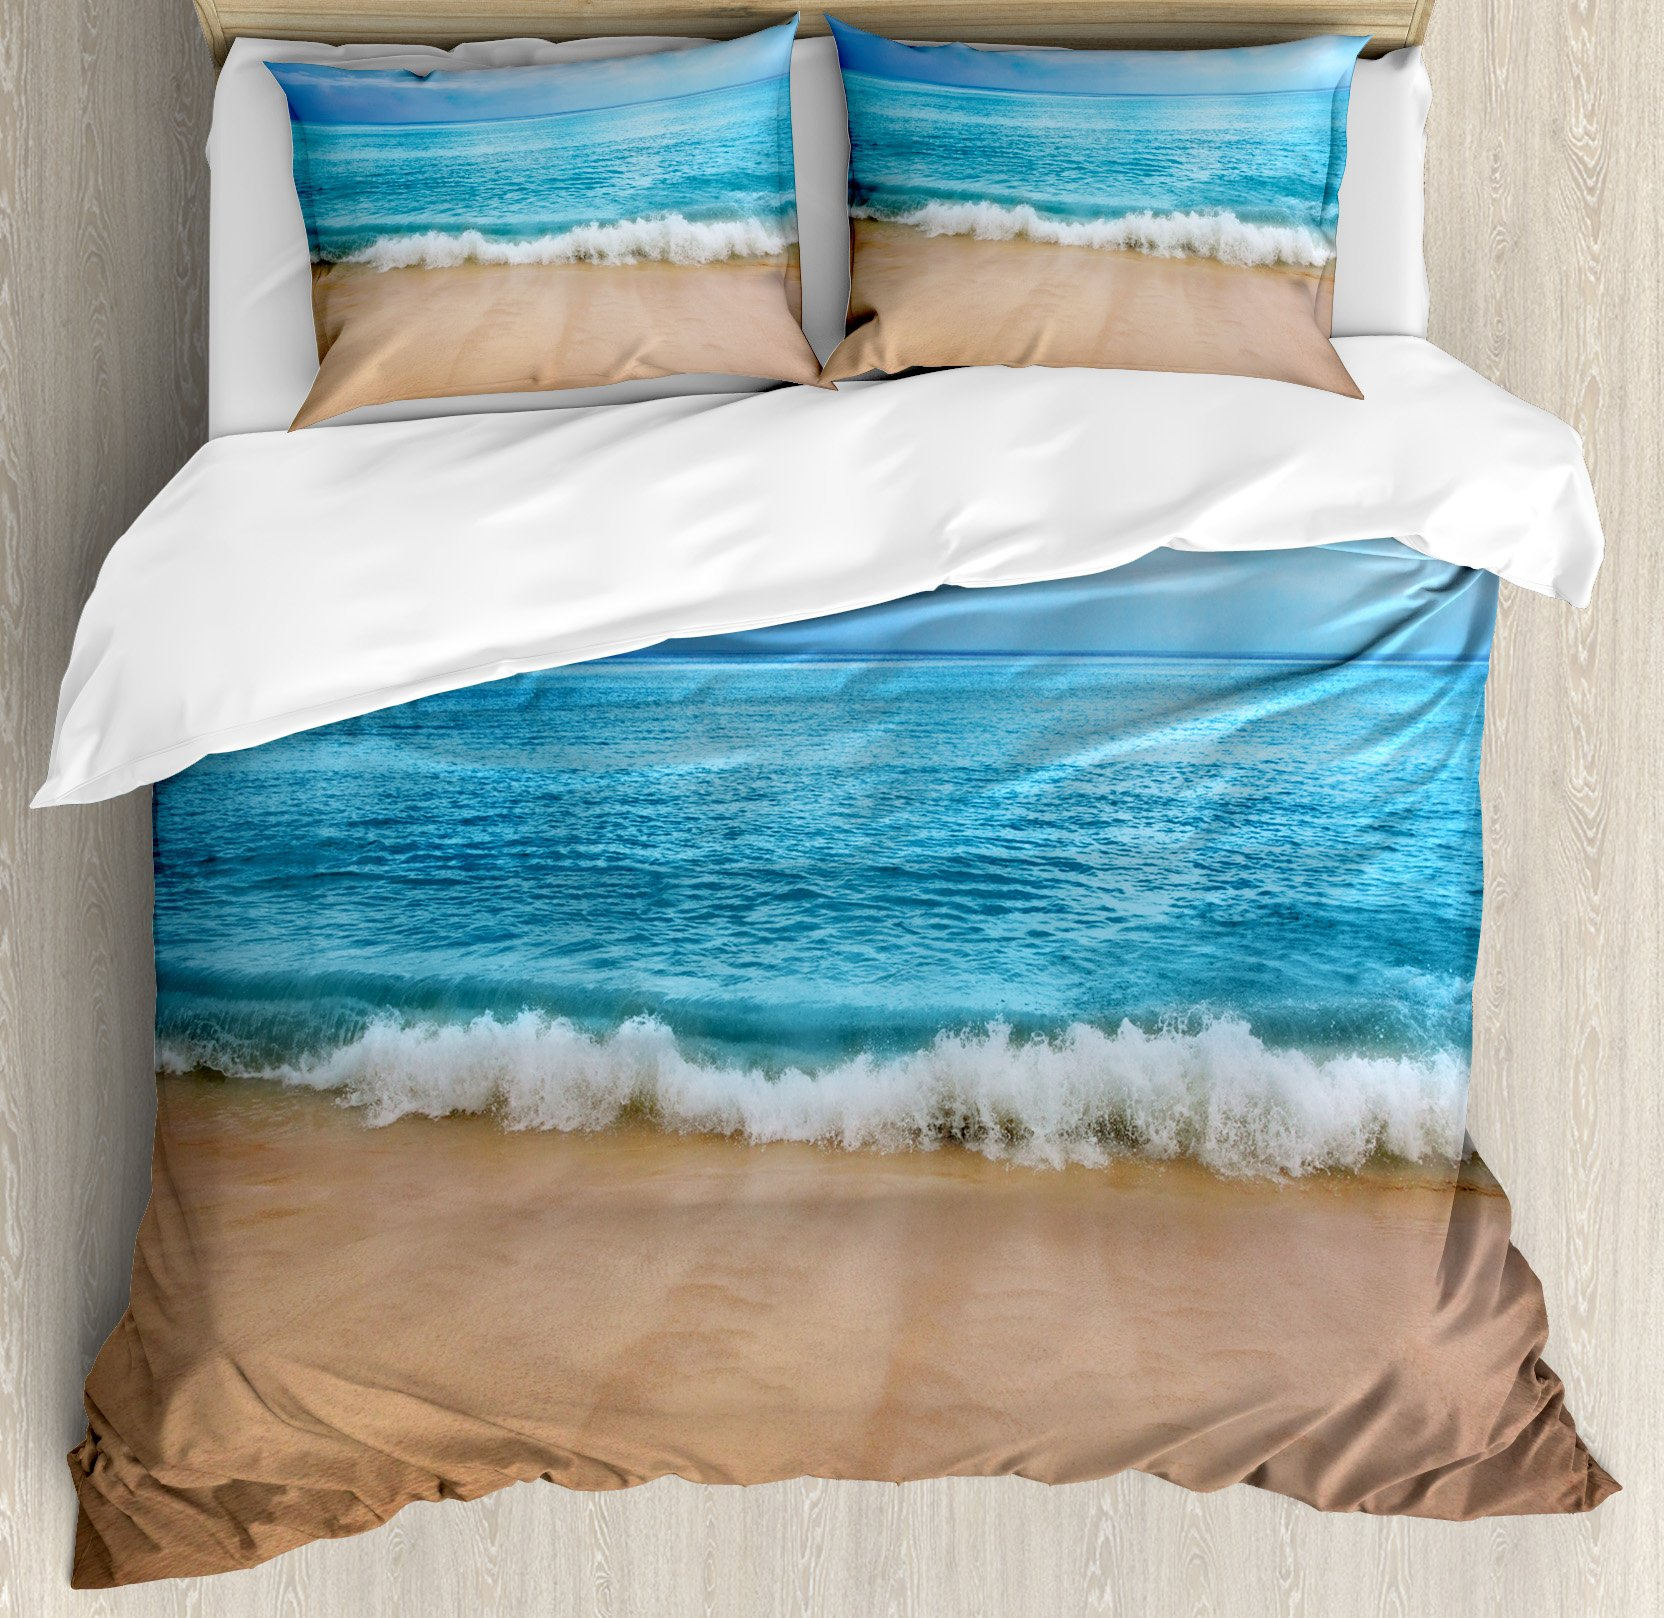 Ocean Decor King Size Duvet Cover Set by Ambesonne, India Andaman Islands Calm Sea Soft Sand Beach Summer, Decorative 3 Piece Bedding Set with 2 Pillow Shams